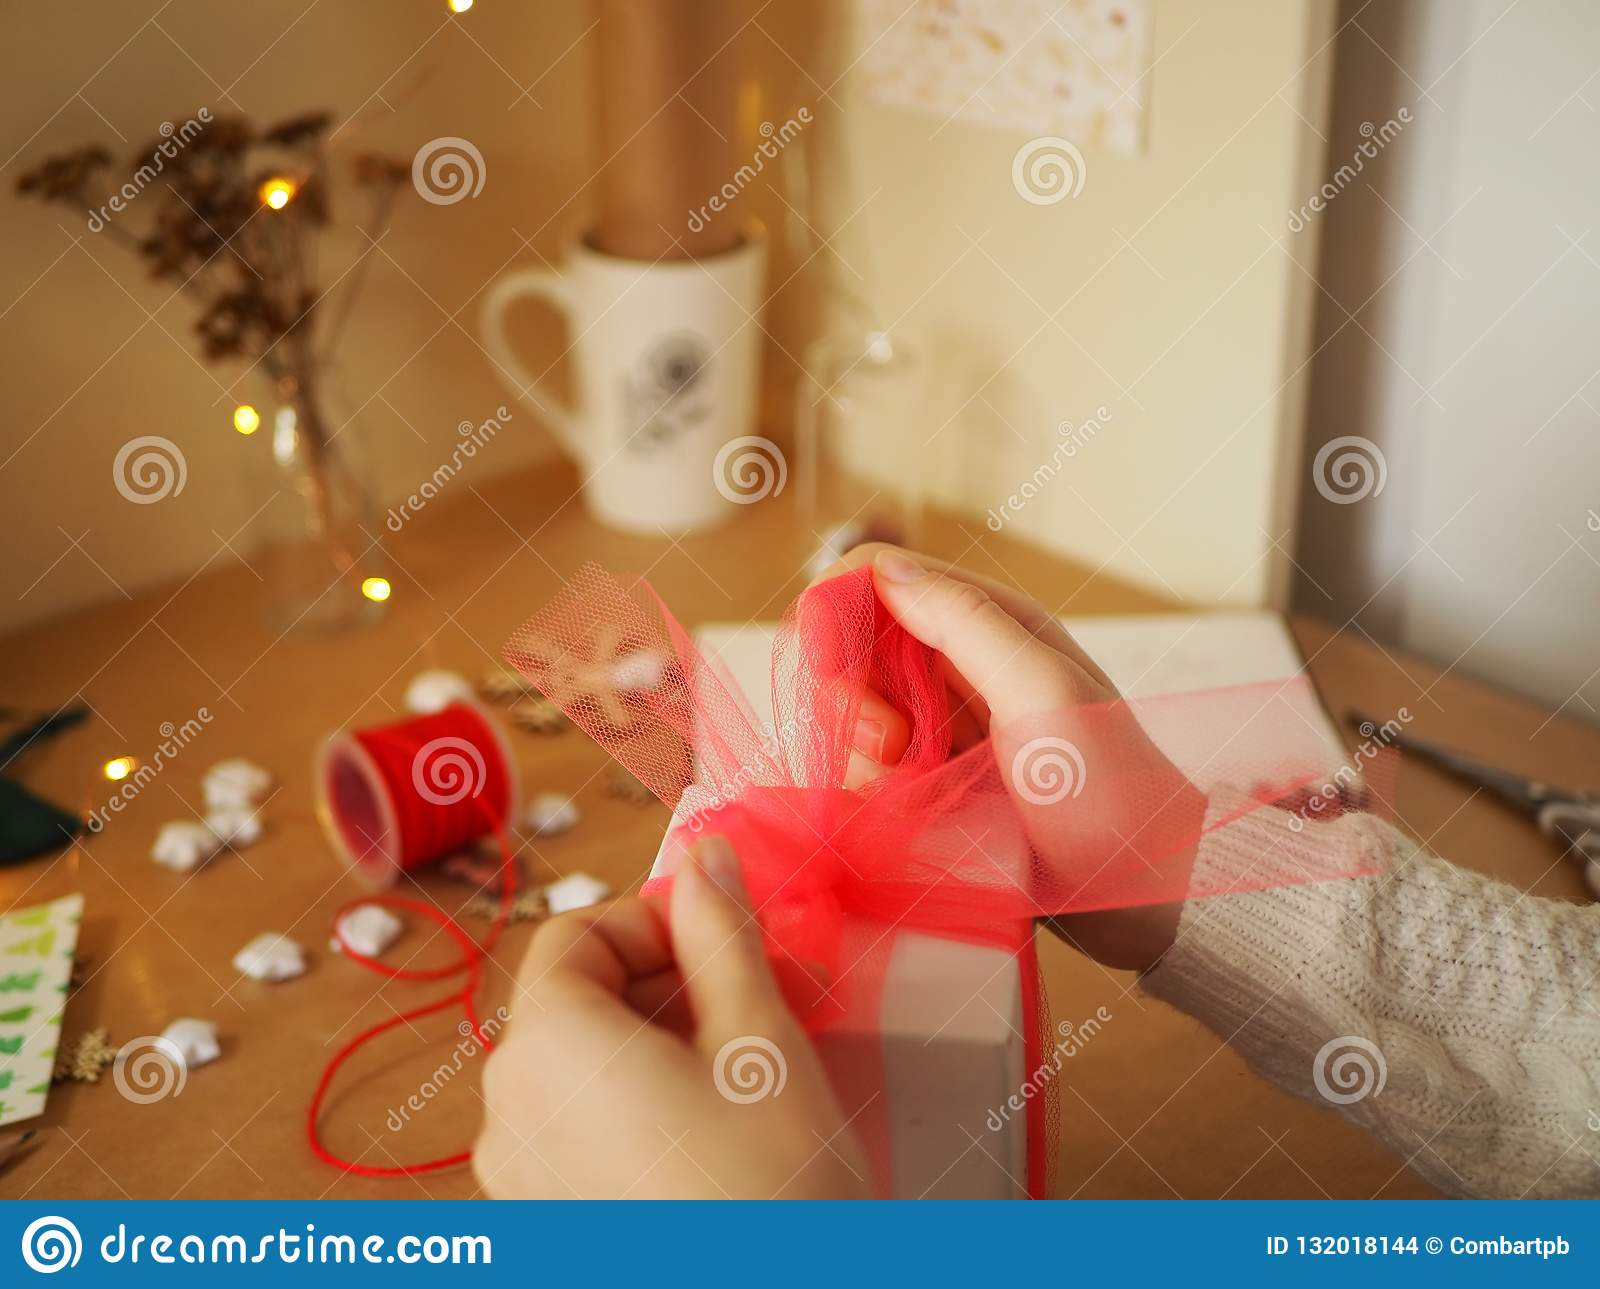 A girl ties a ribbon of tulle on a gift, preparing a surprise